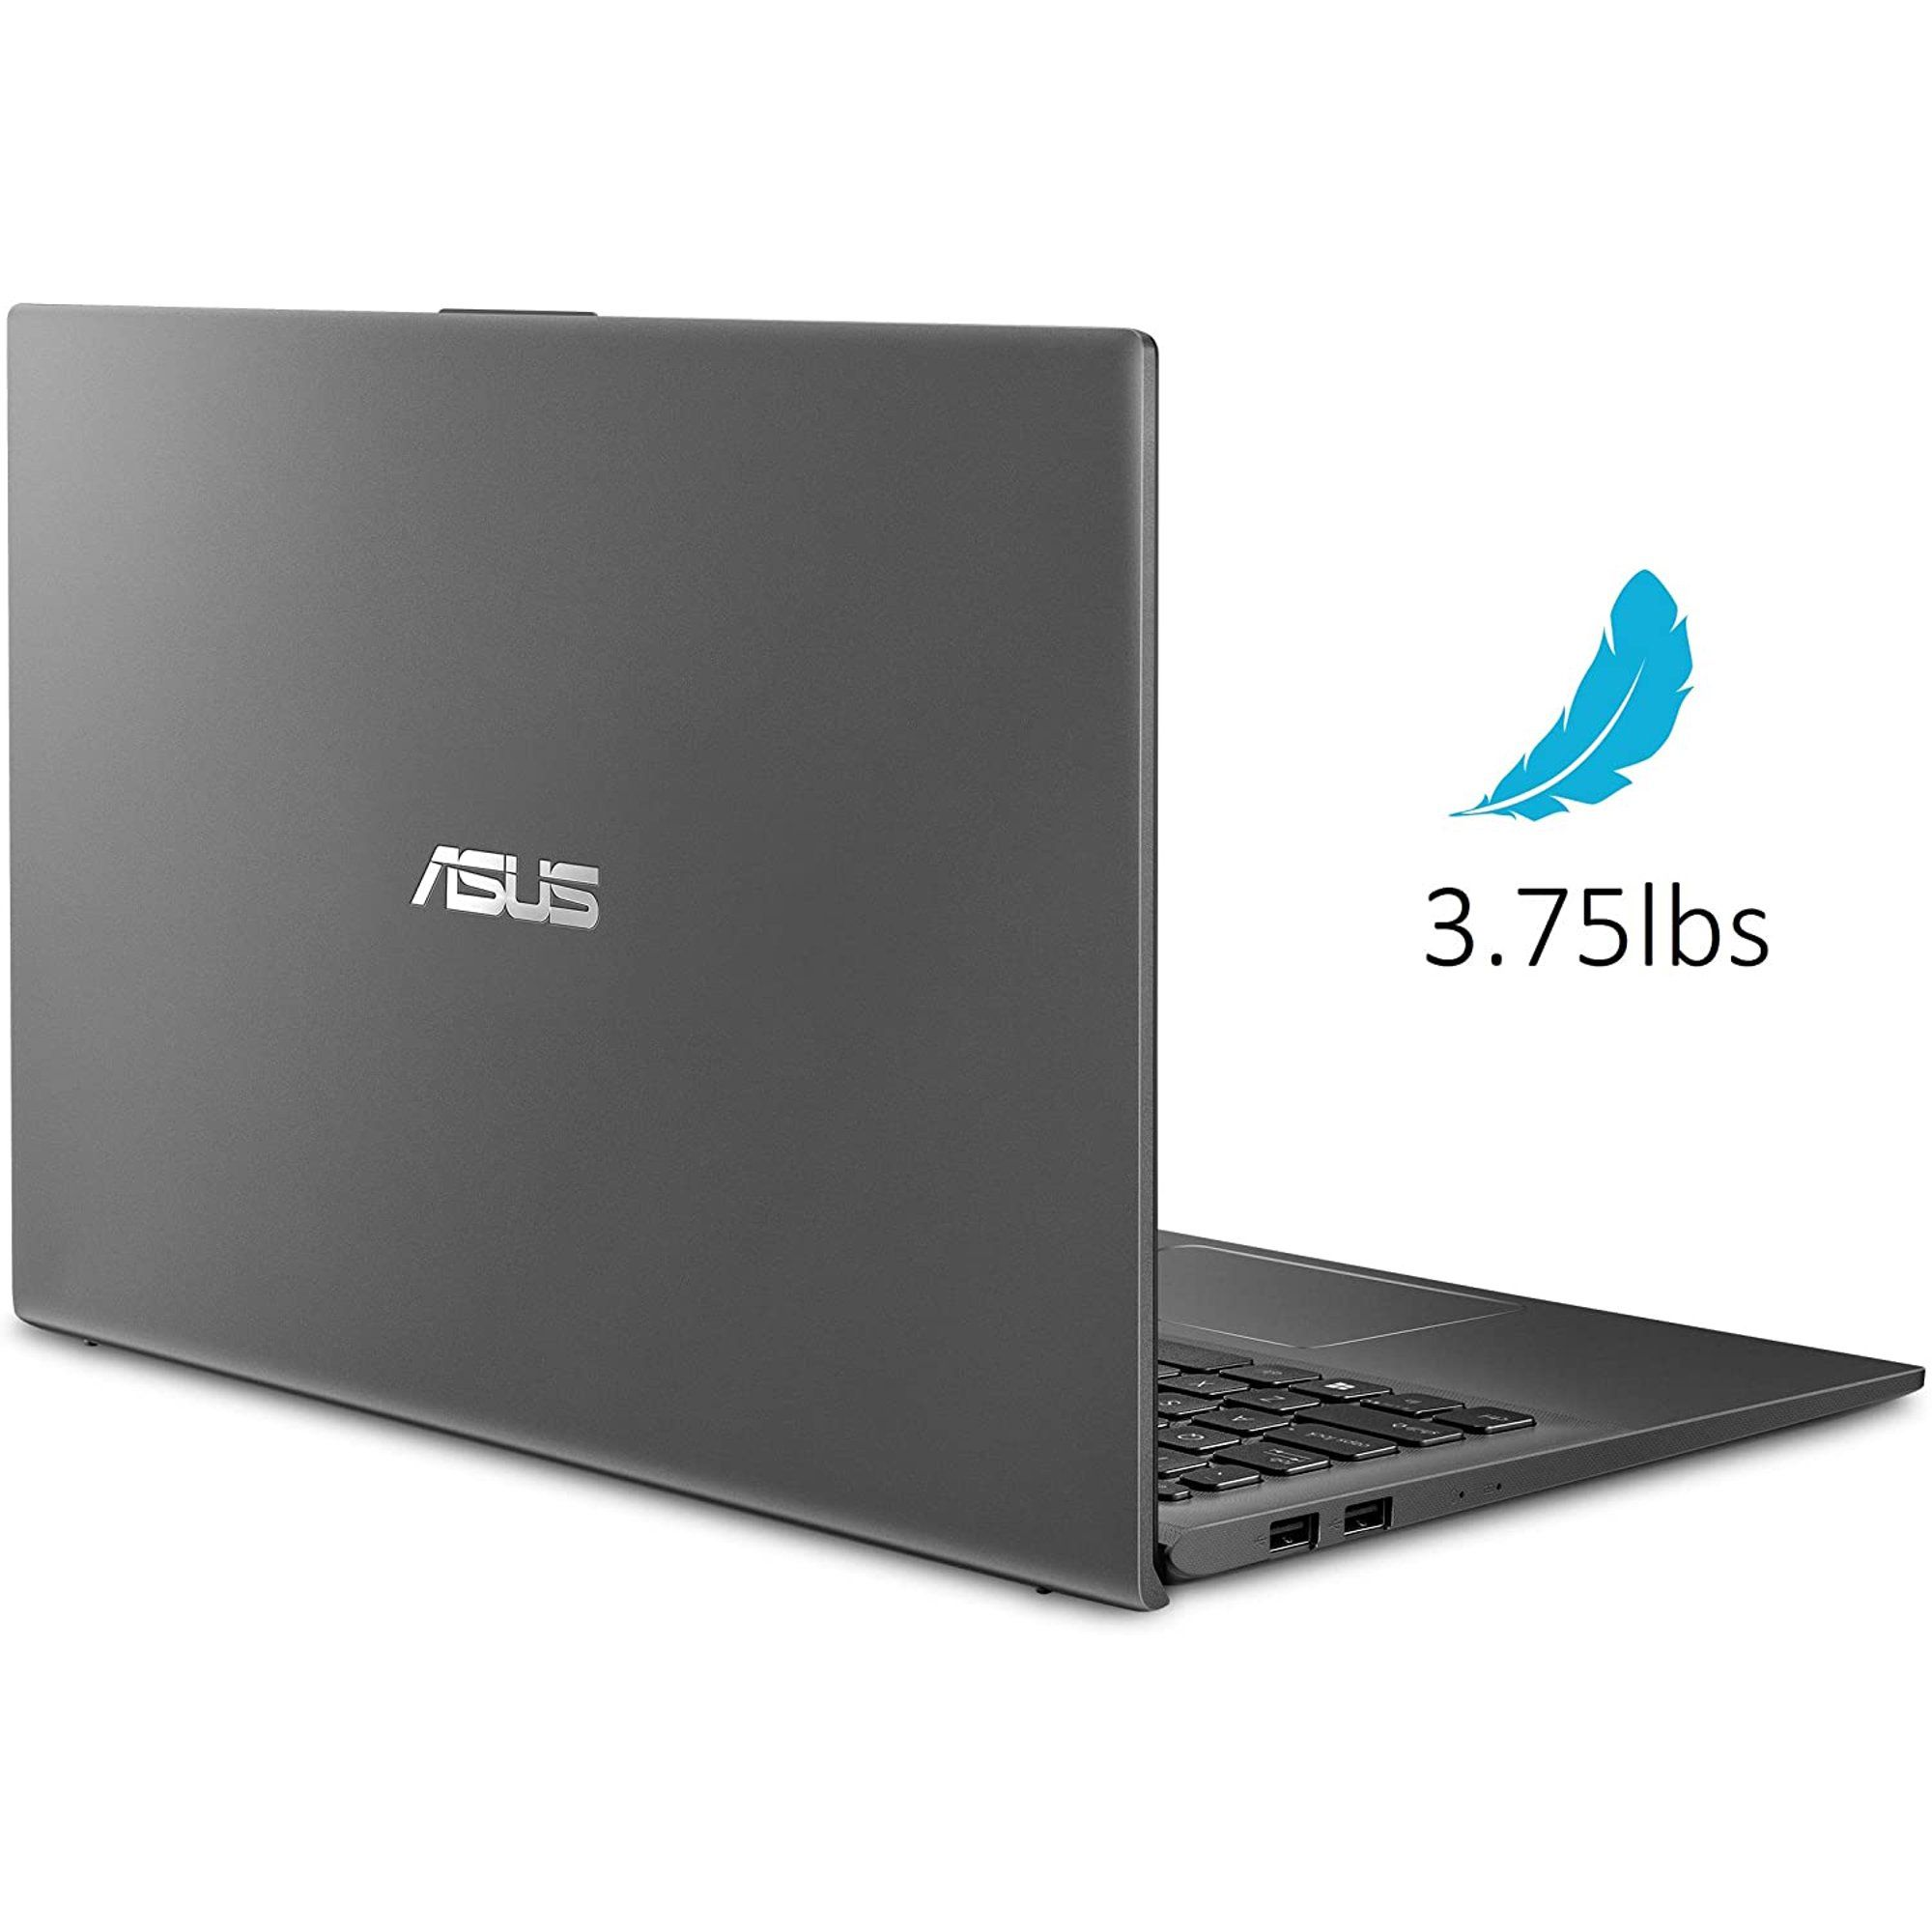 Asus Vivobook 15 2020 Newest Thin And Light Laptop I 15 6 Fhd Display I 10th Gen Intel Core I3 1005g1 I 20gb Ddr4 512gb P Light Laptops Asus Asus Vivobook S15